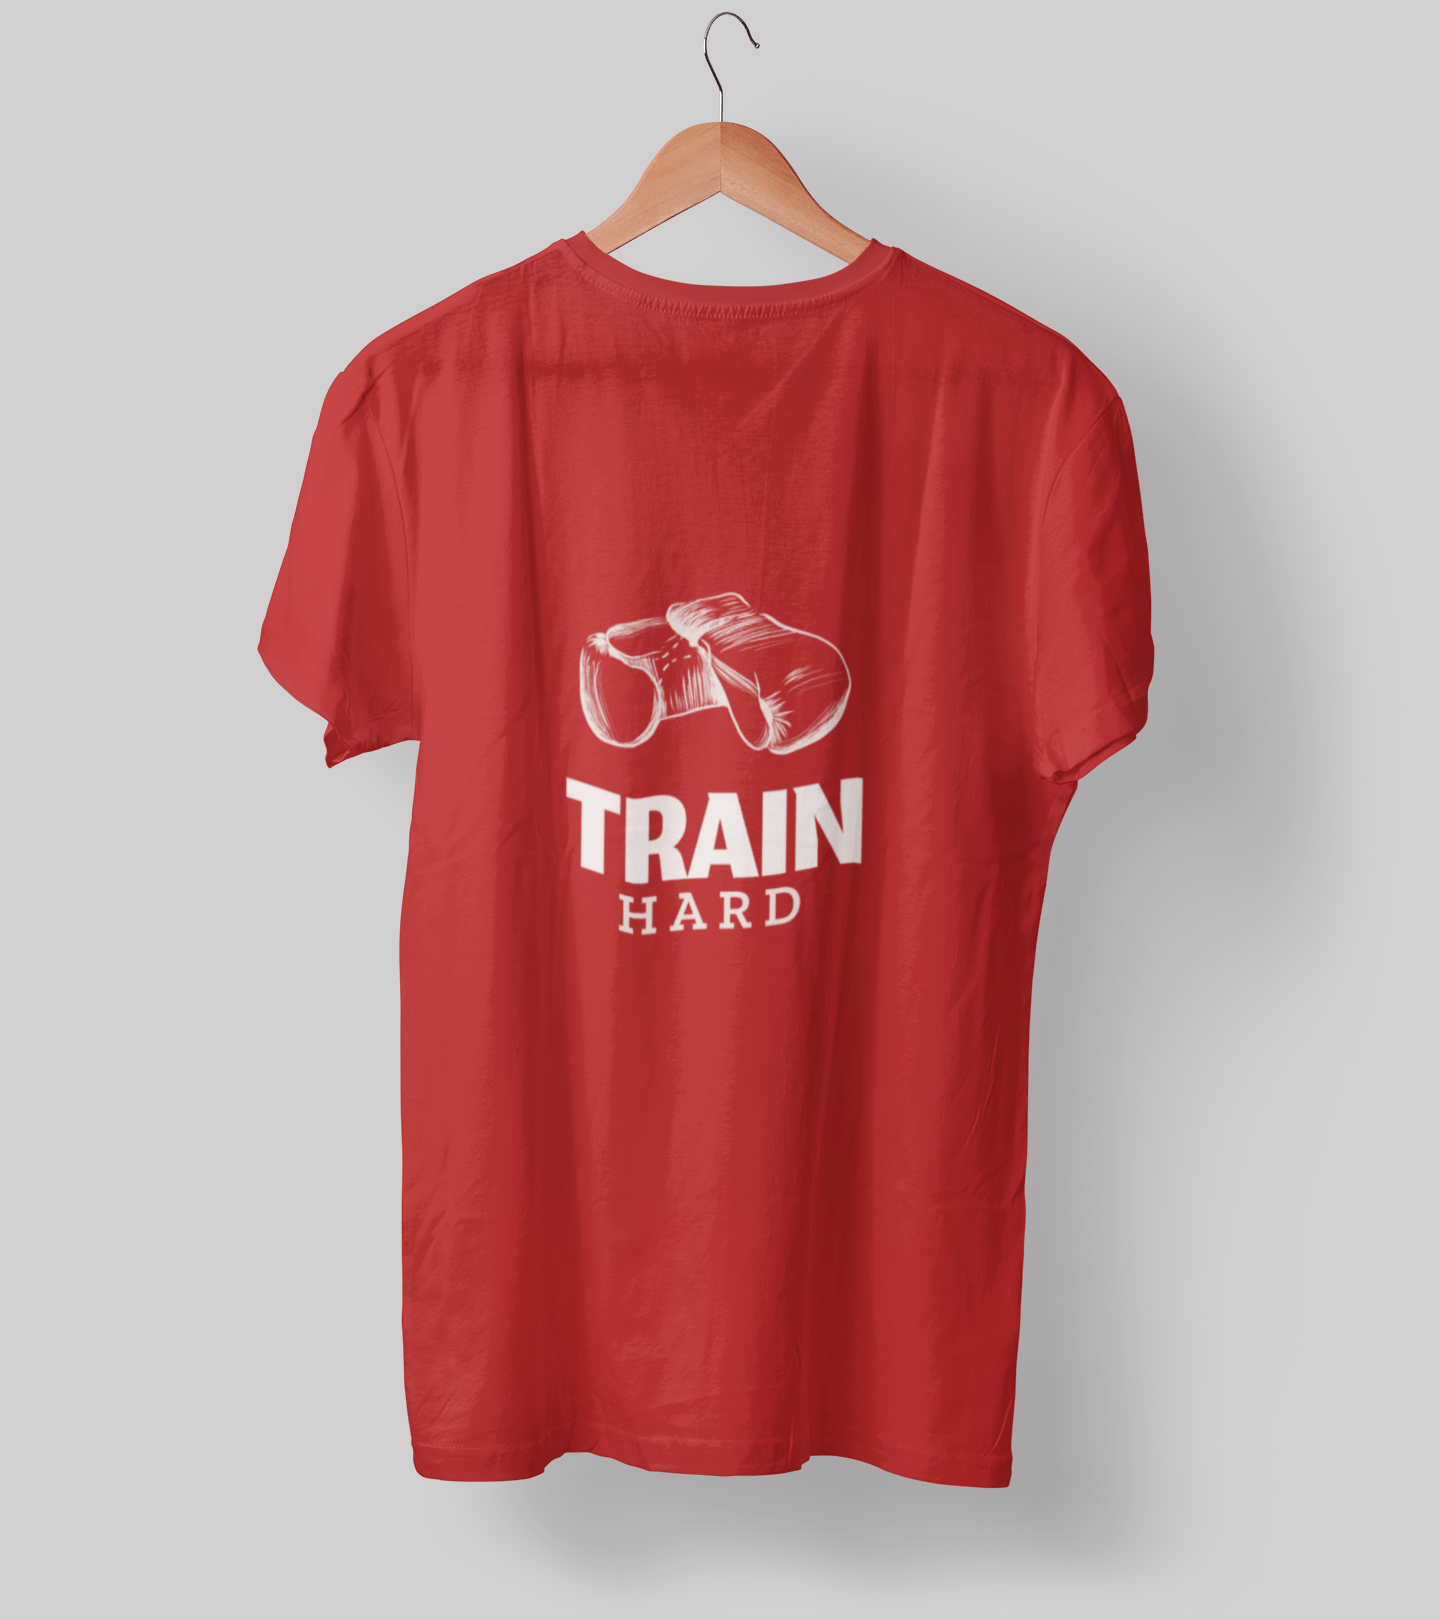 Train Hard Clothing Printrove Red S